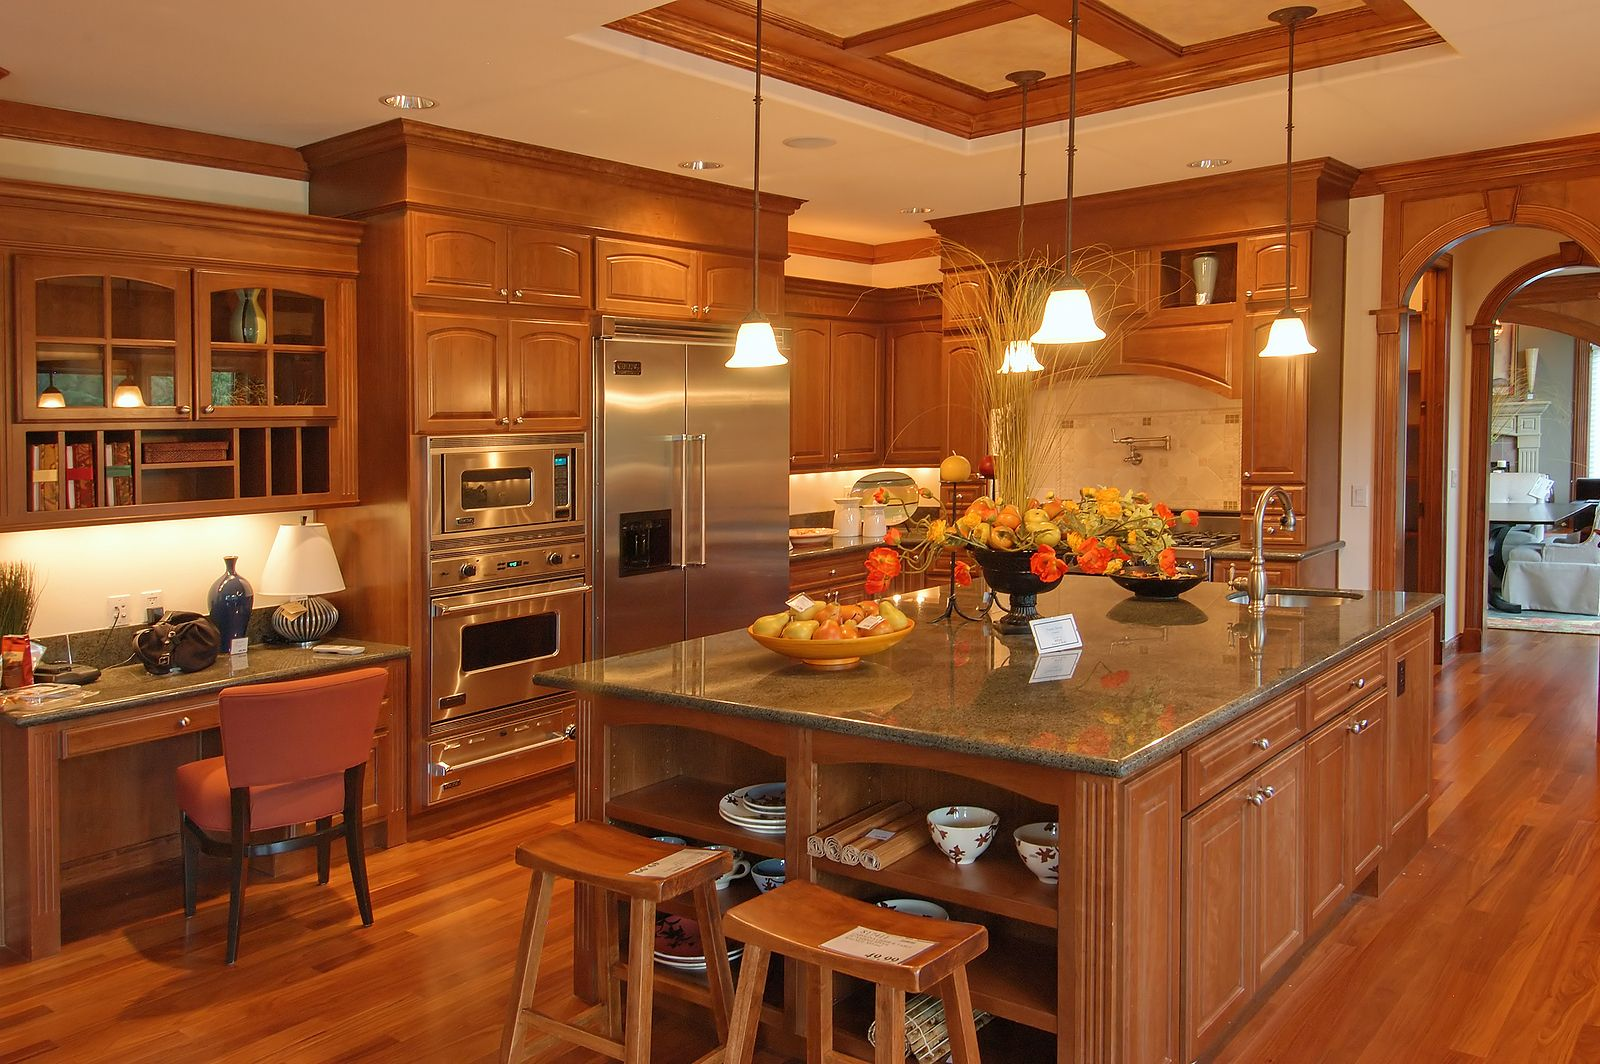 Woodmark Kitchen Cabinets With Elegant Style |